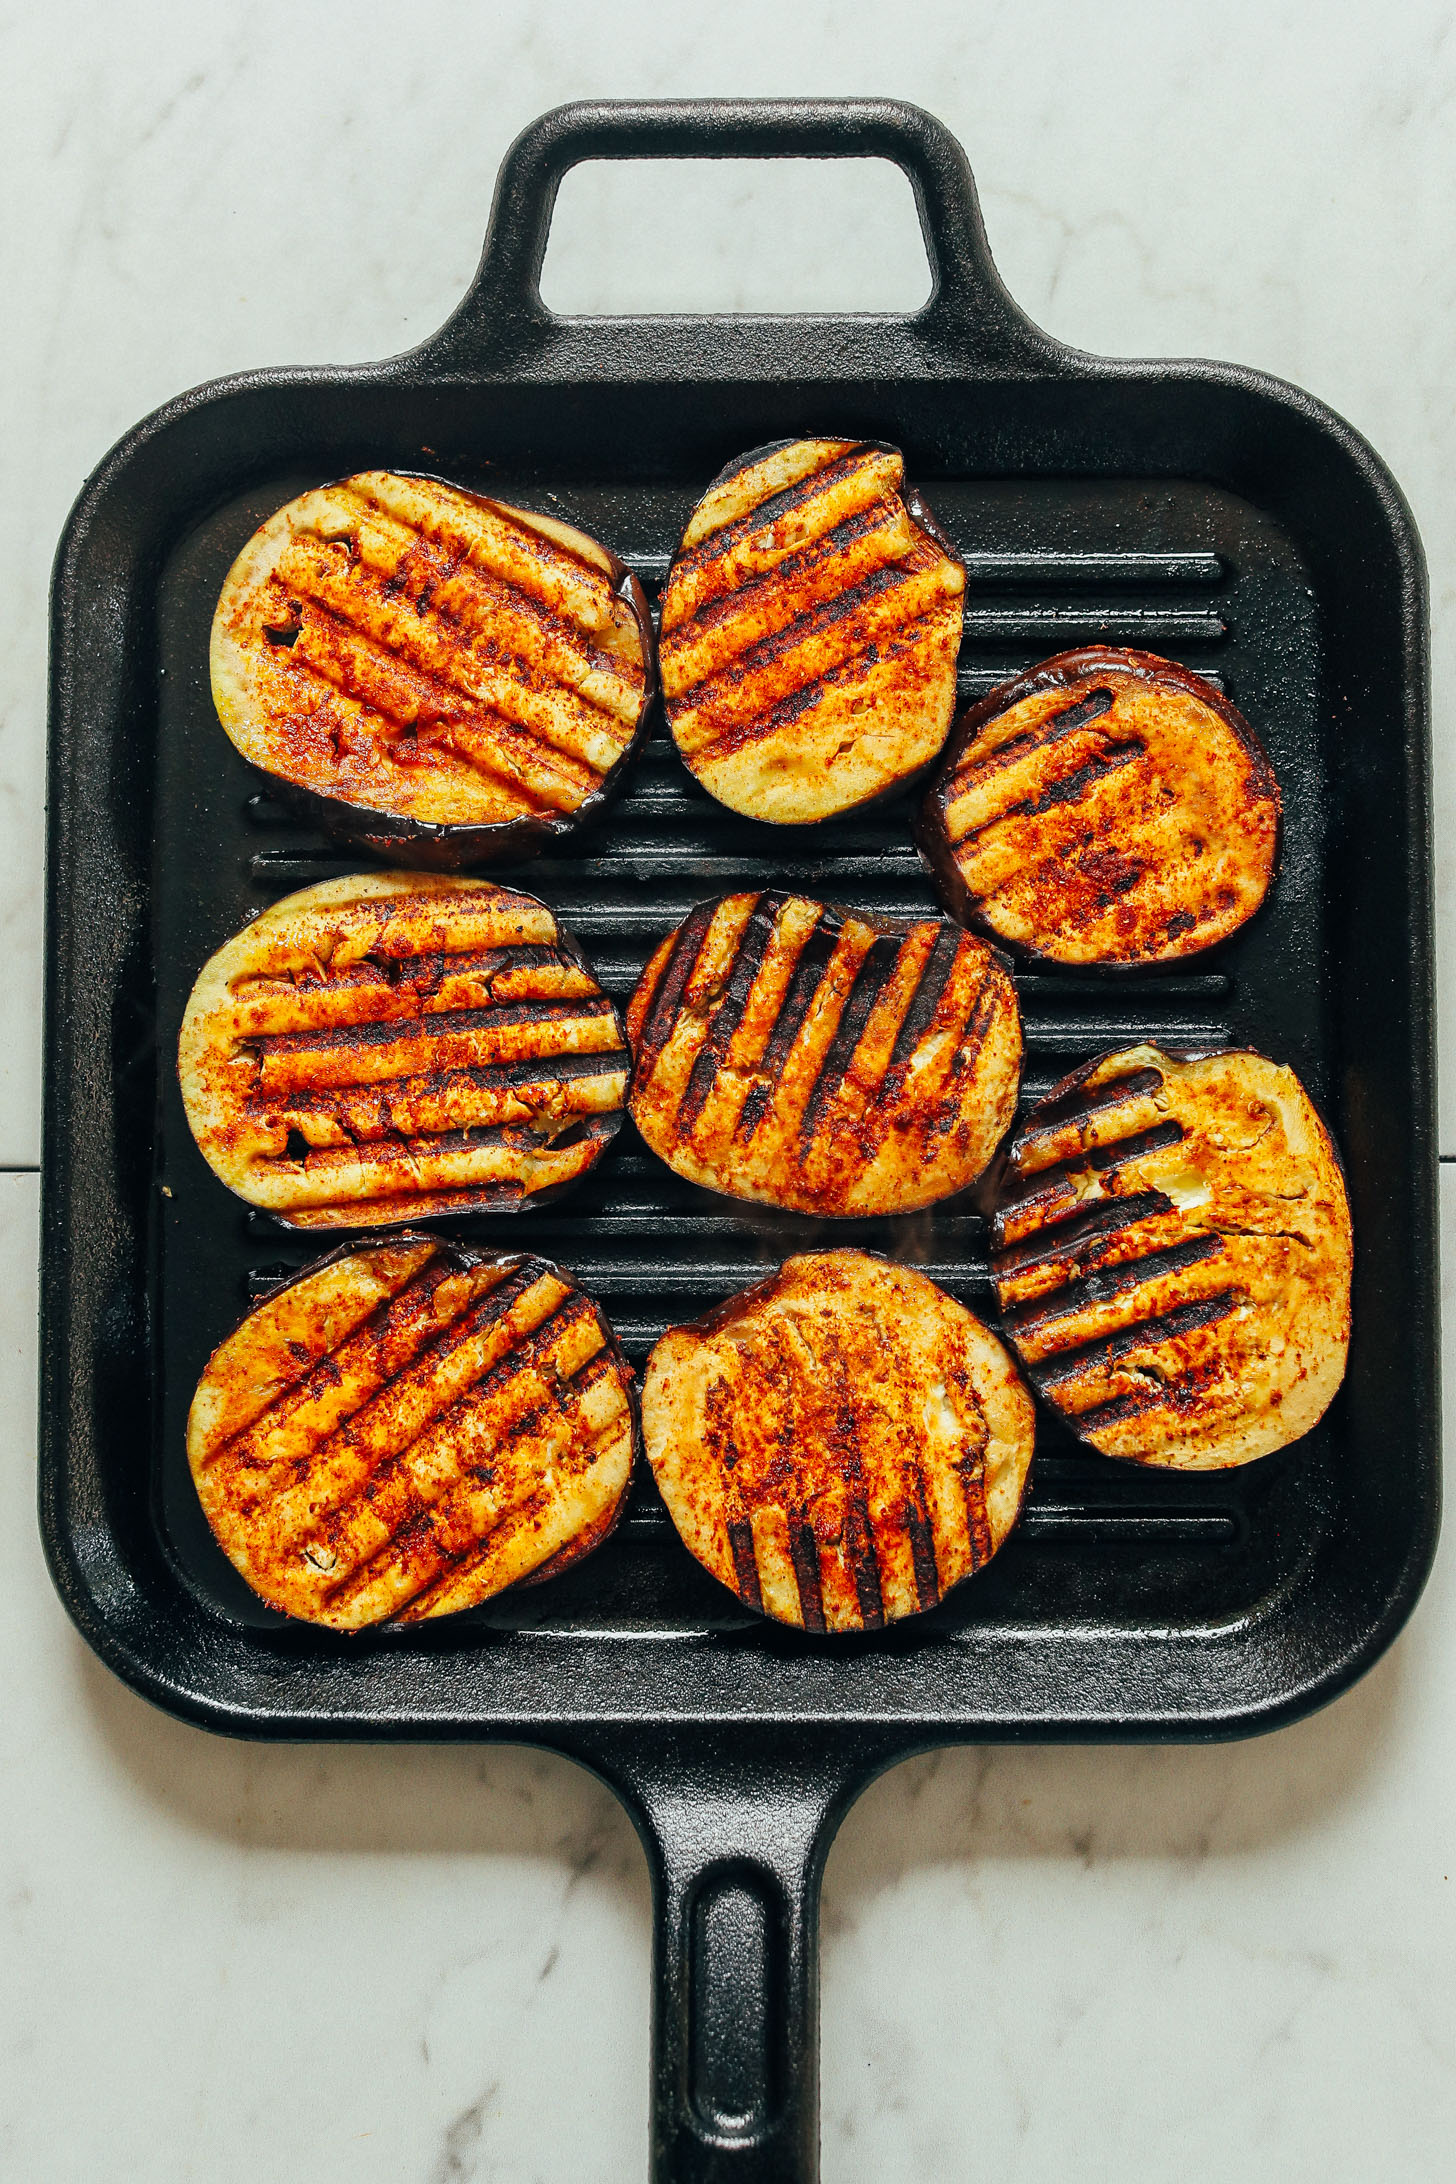 A overhead shot of eggplant slices seasoned with a spice blend and grill marks.